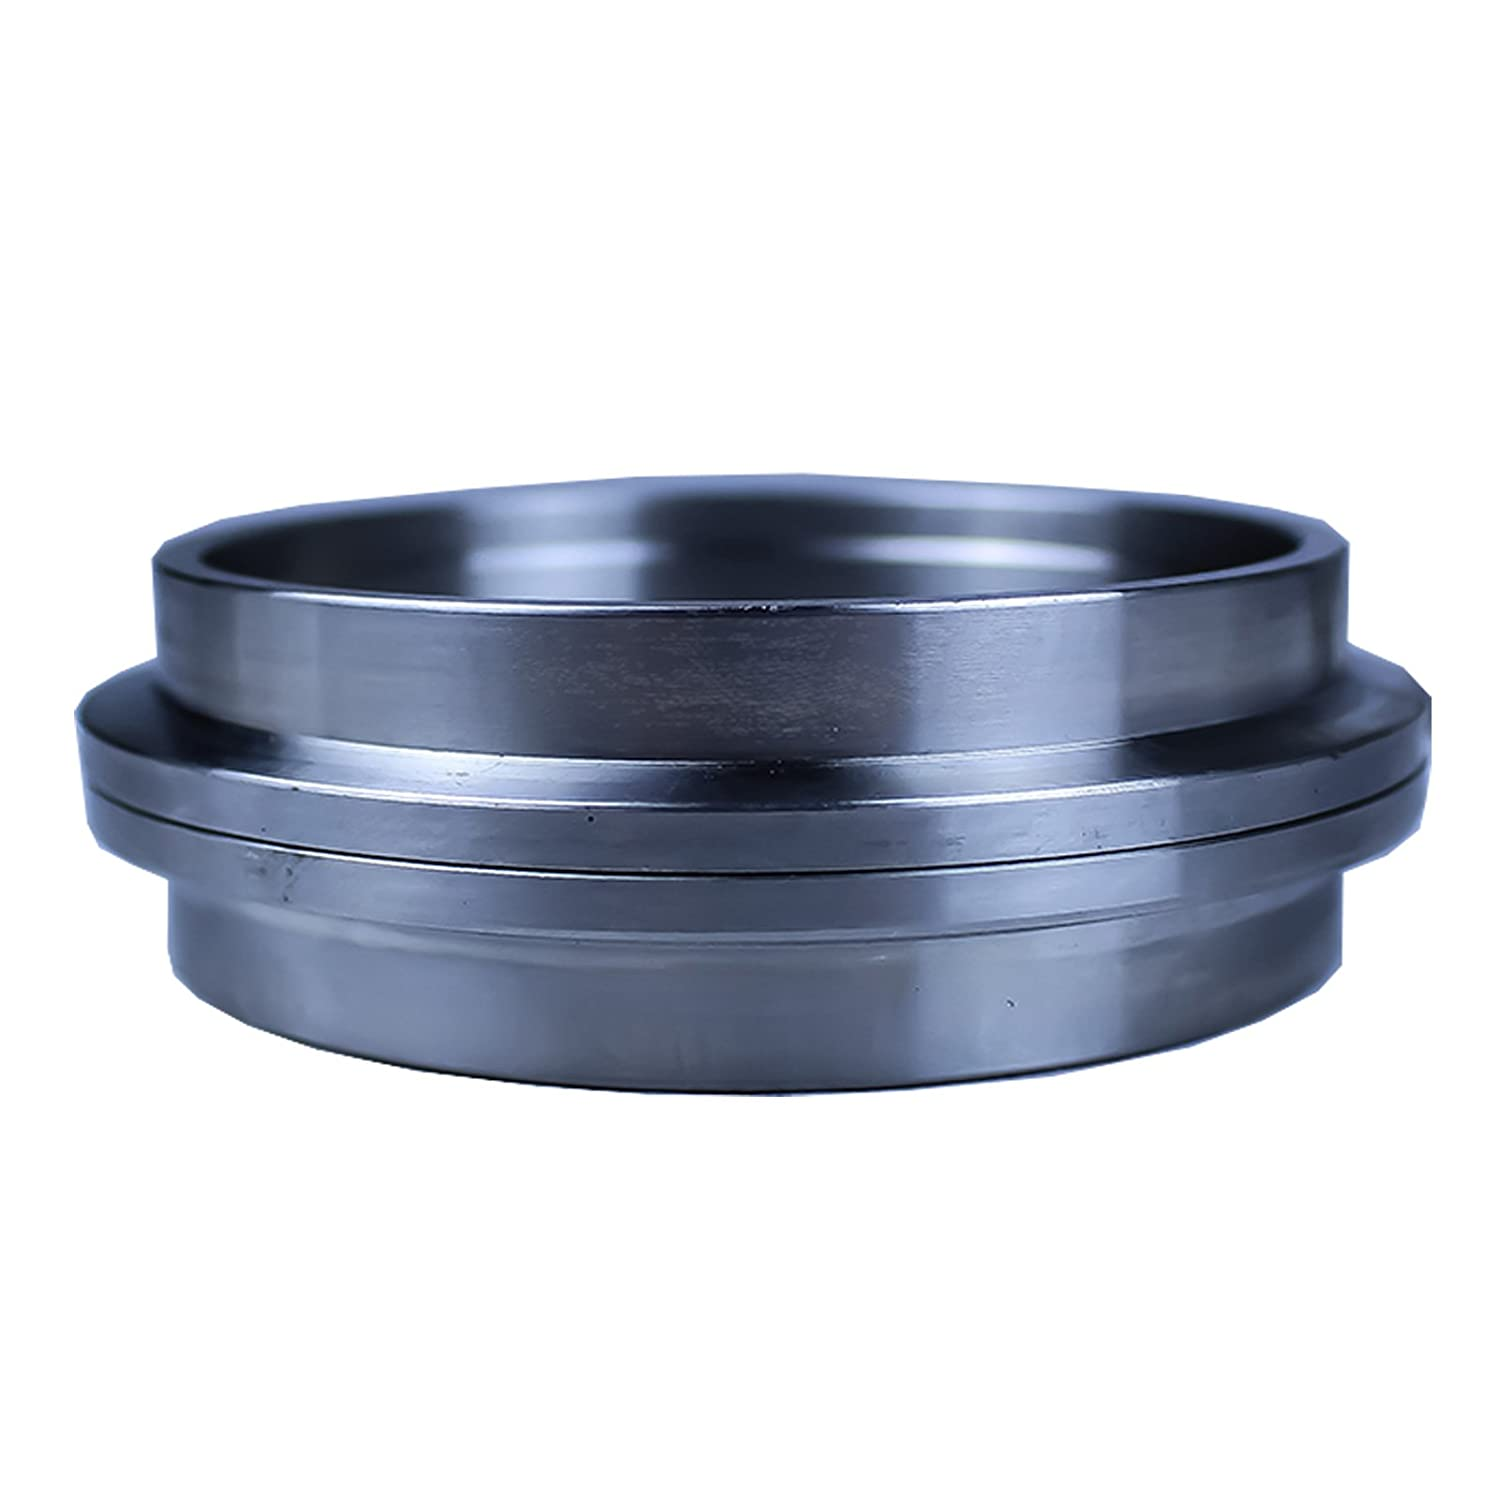 ( AC-059-QUICK ) Quick Release V band Clamp & Flange, 4